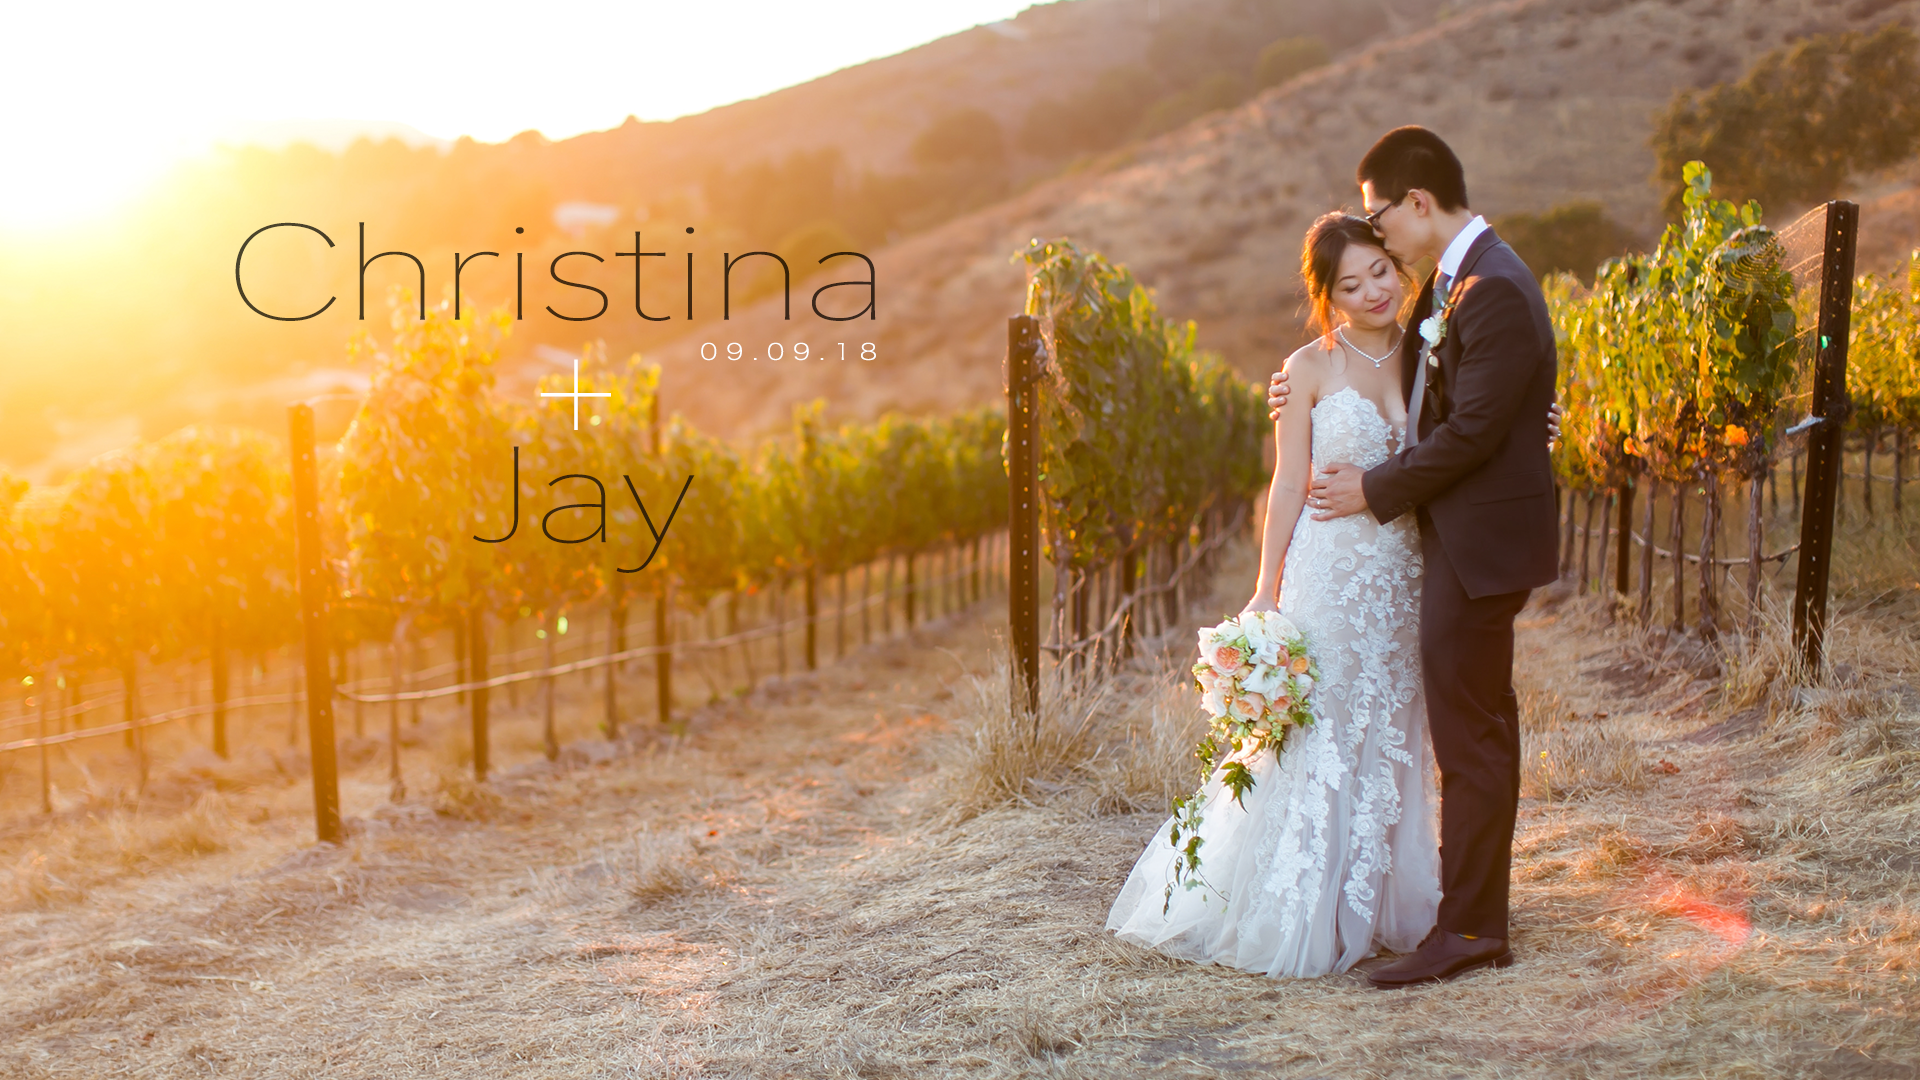 Christina + Jay | Carmel Valley, California | Holman Ranch